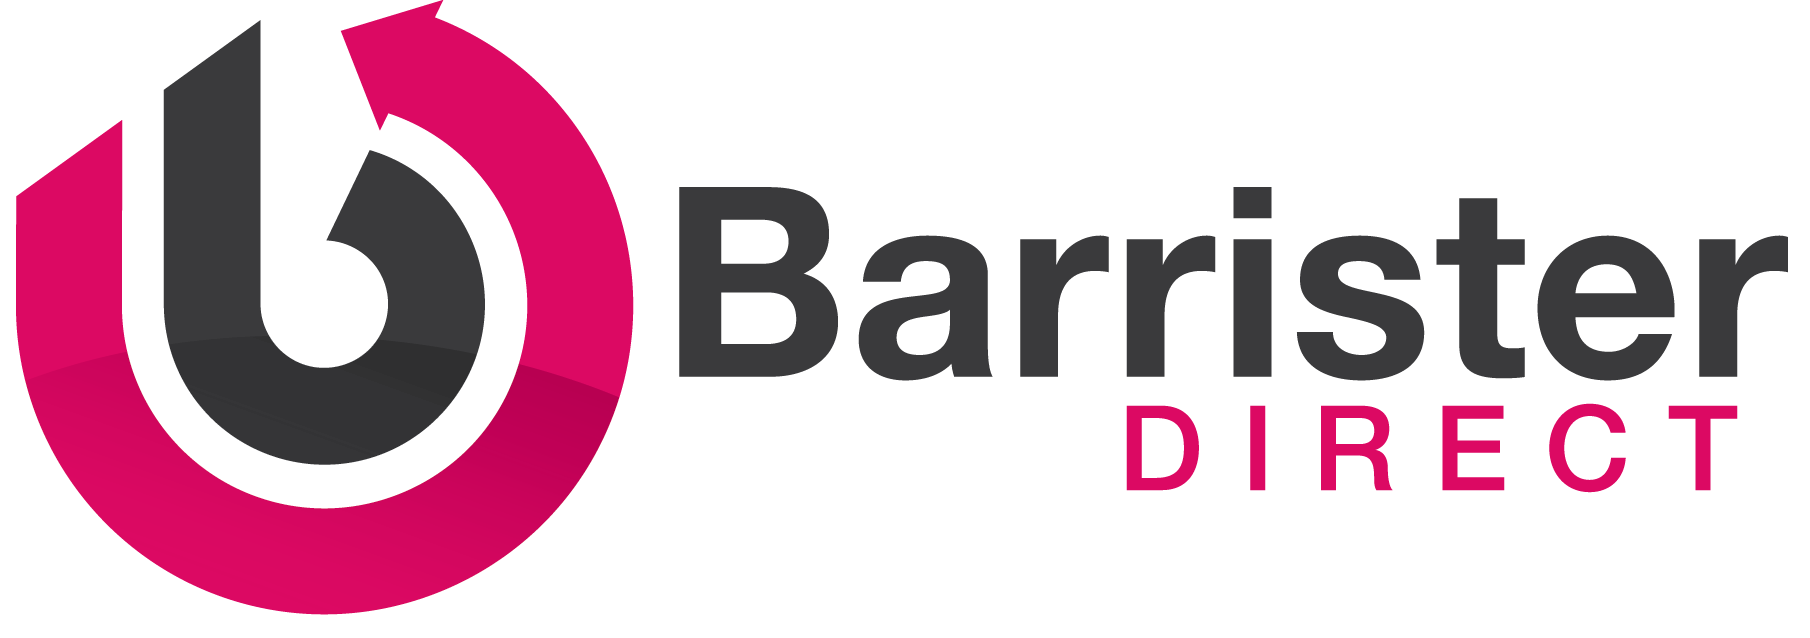 Barrister Direct – Direct Access to Barristers\' Services